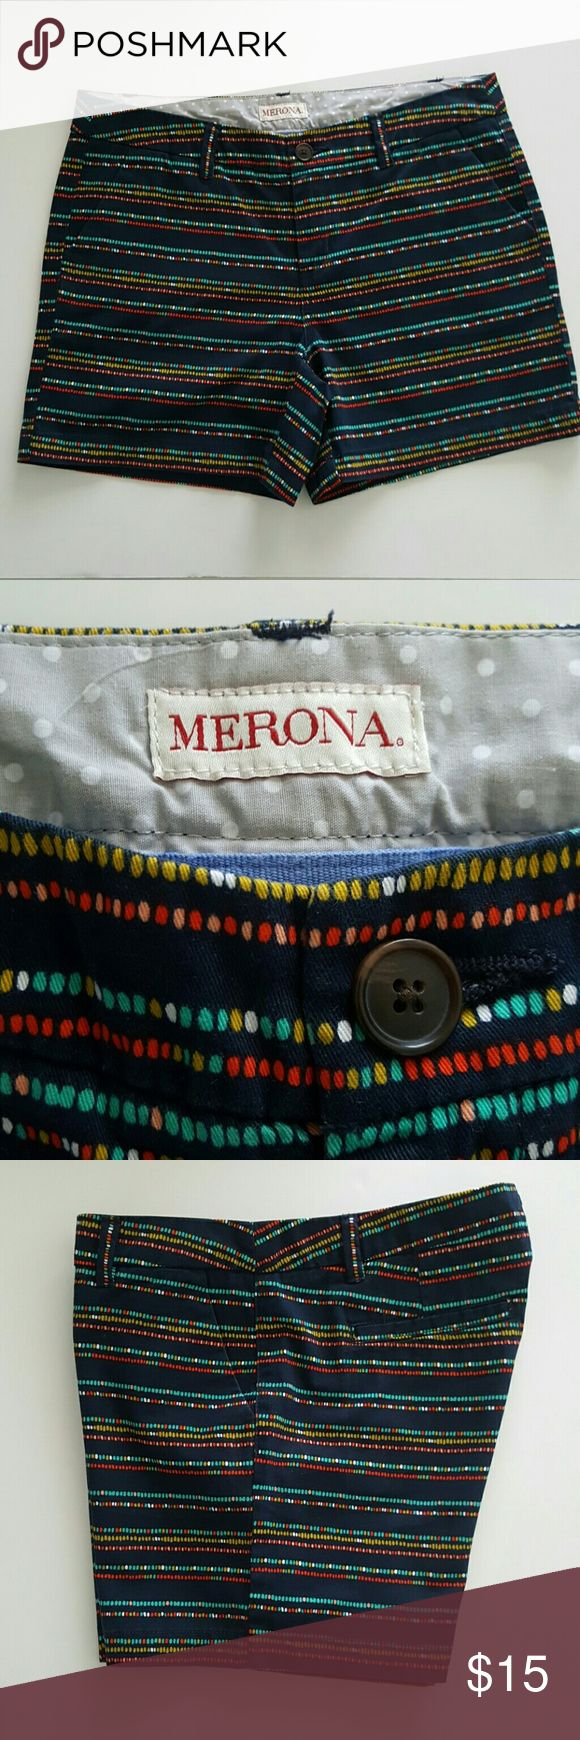 Merona Shorts Navy Blue w/ colorful stripes, Great for combine W / T-shirt or Blouses, dressy or informal Attire!! Merona Shorts Skorts